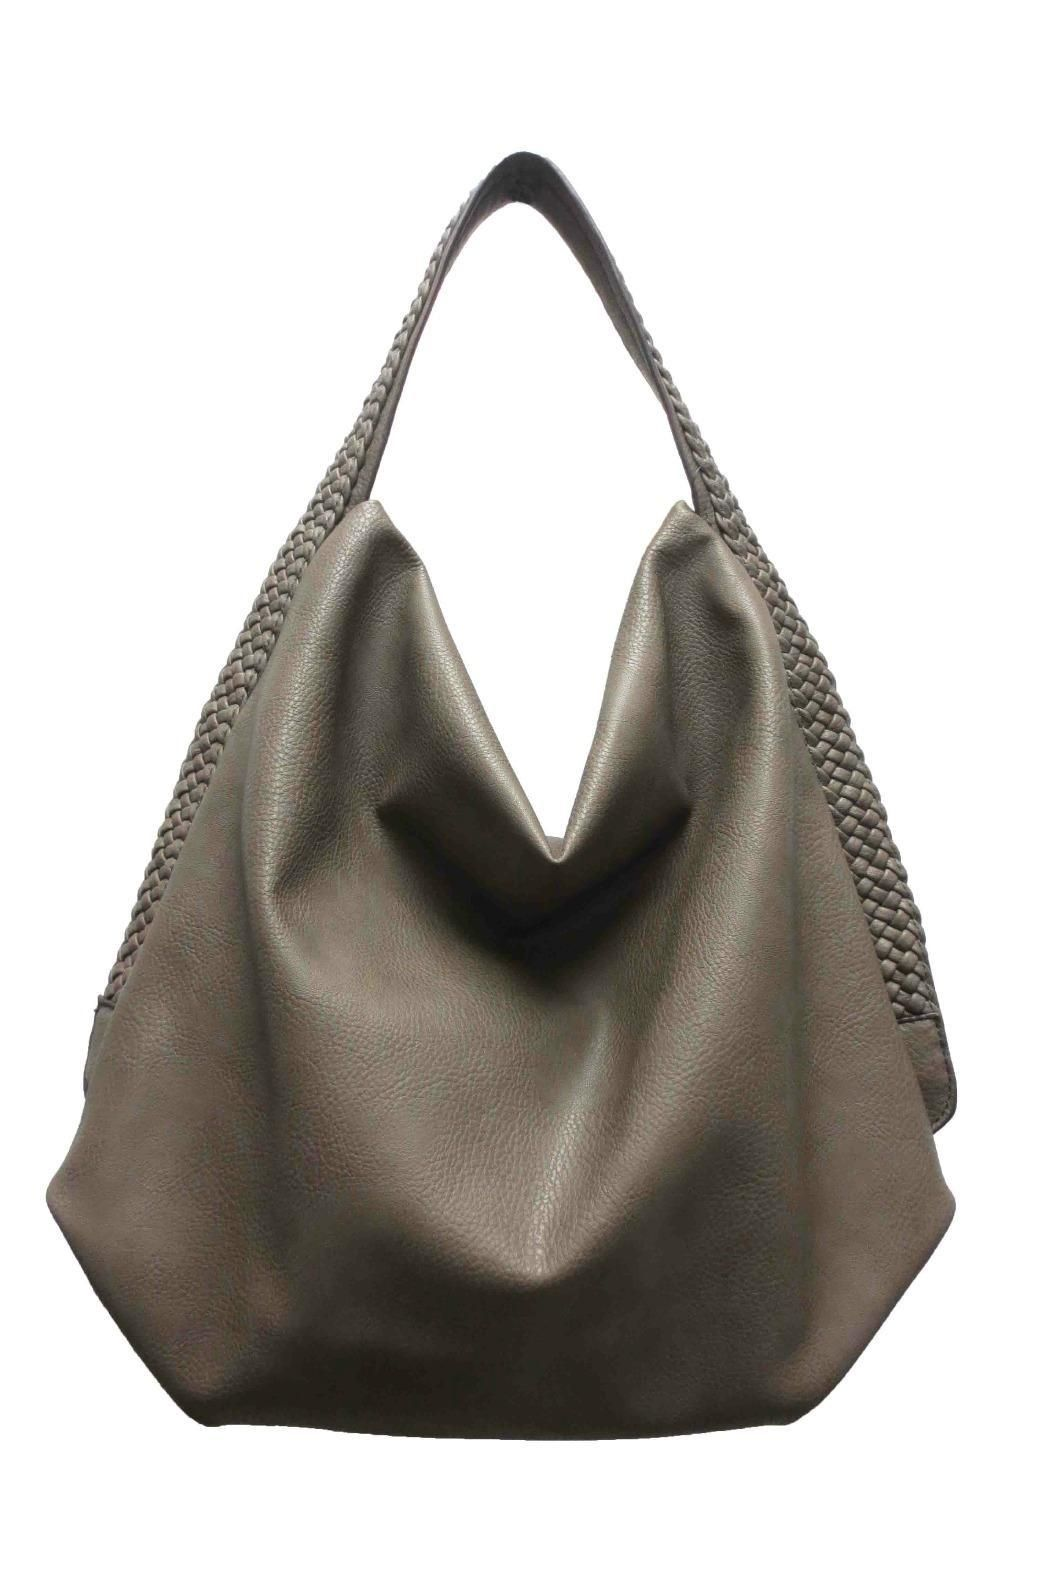 d906ef267f Lightweight fango grey leather hobo bag with braided shoulder strap.  Measurements  15.6H x 13.65 L x 13.65 W  5 Strap Drop Hobo Pepple Fango Bag  by Sondra …